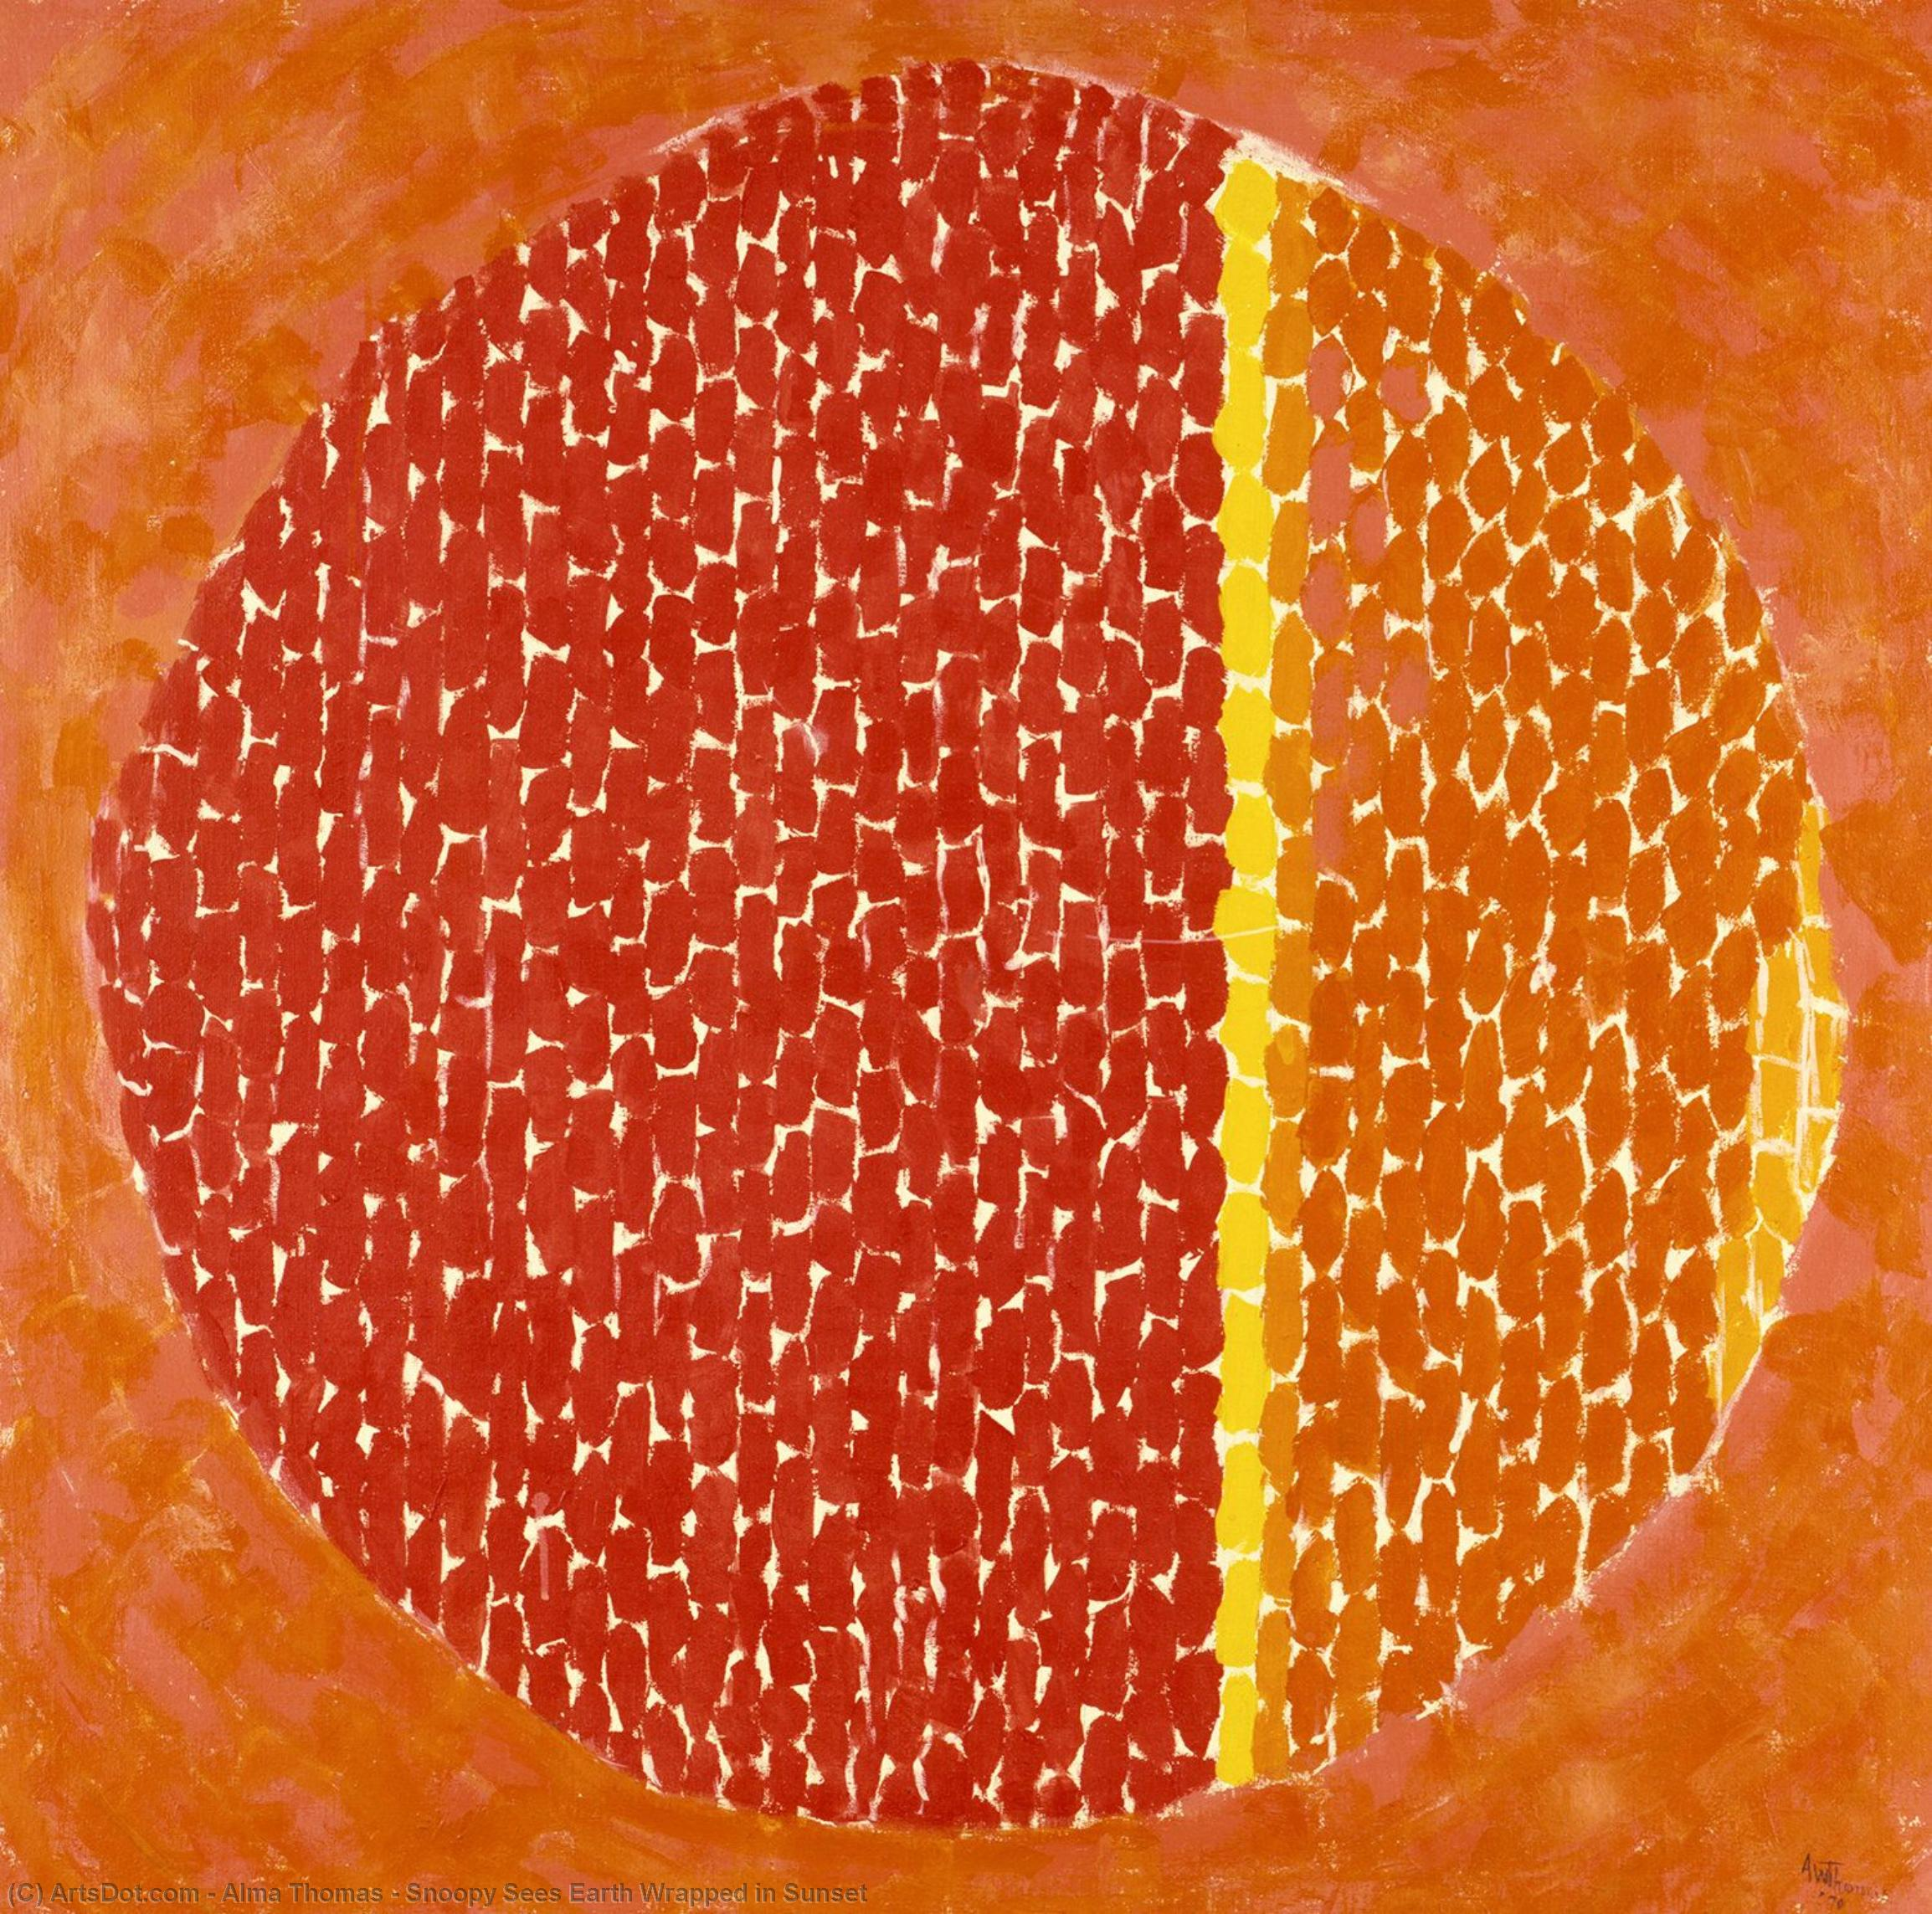 Snoopy Sees Earth Wrapped in Sunset, 1970 by Alma Thomas (1891-1978, United States) | Museum Quality Reproductions | ArtsDot.com